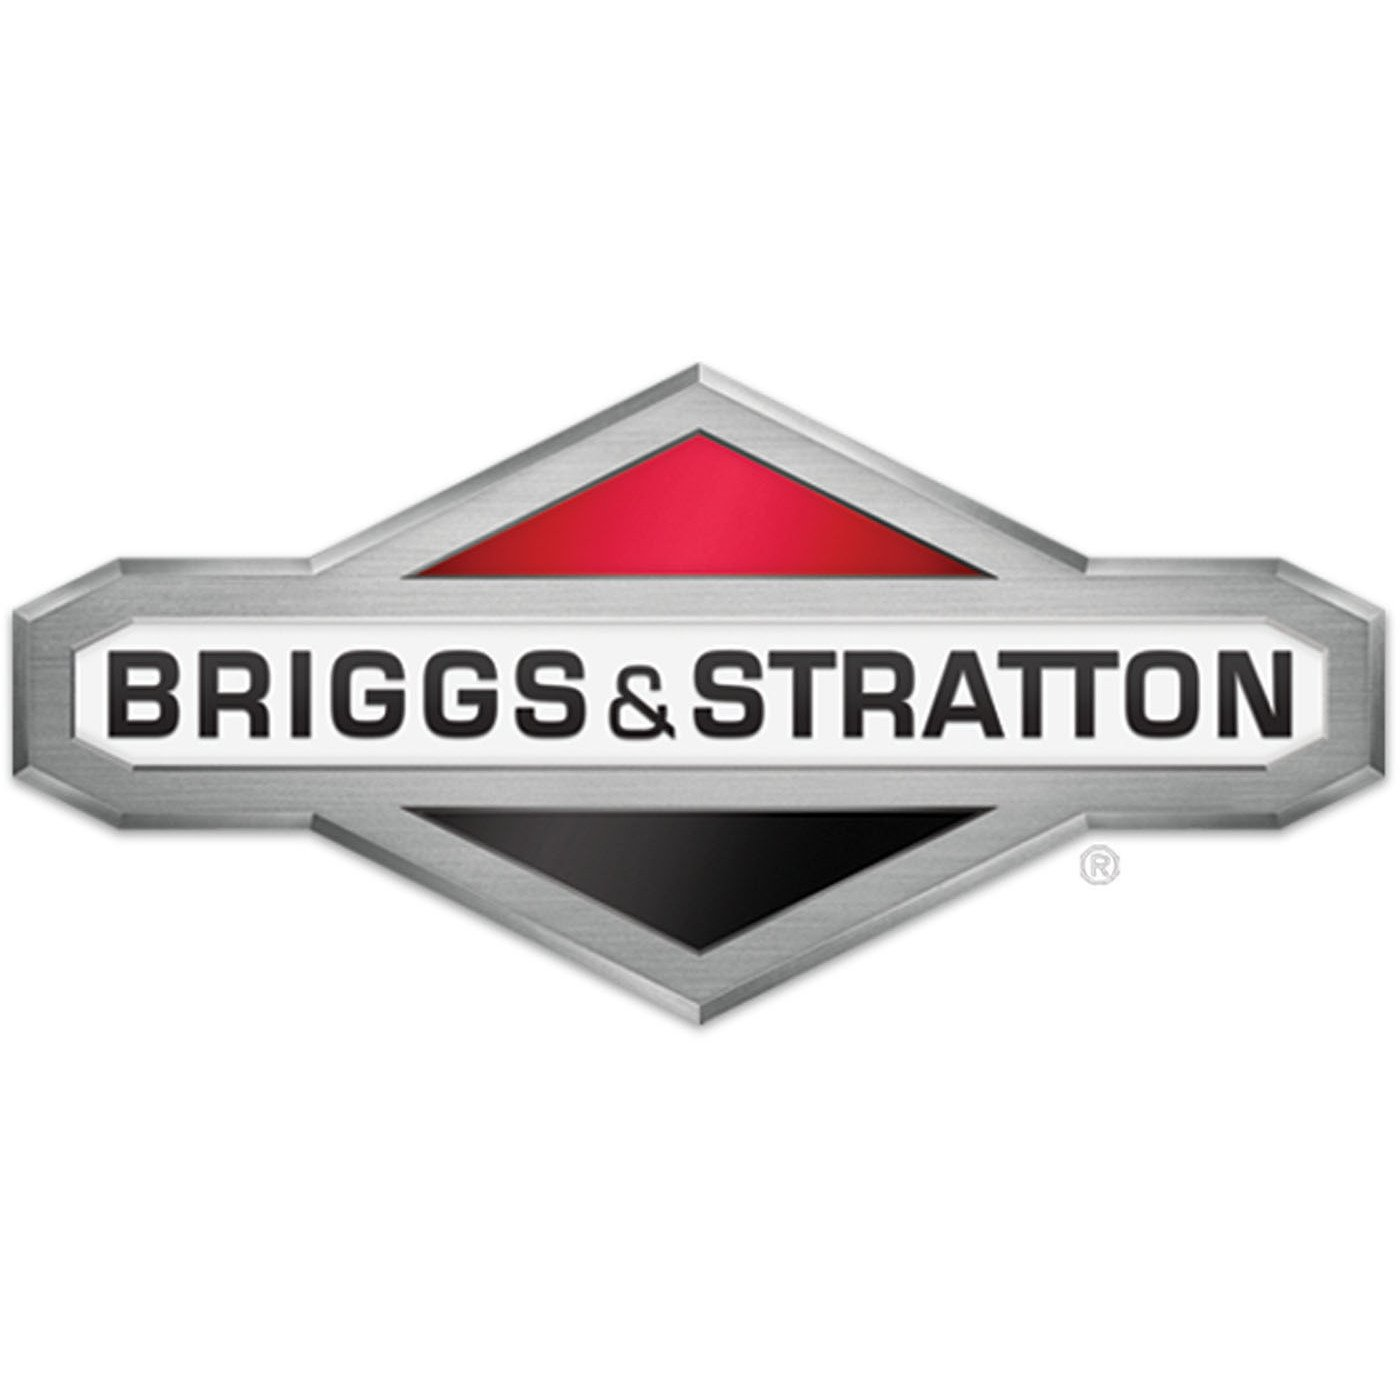 Briggs & Stratton Breaker-circuit 30a Part # 202033GS by Briggs & Stratton